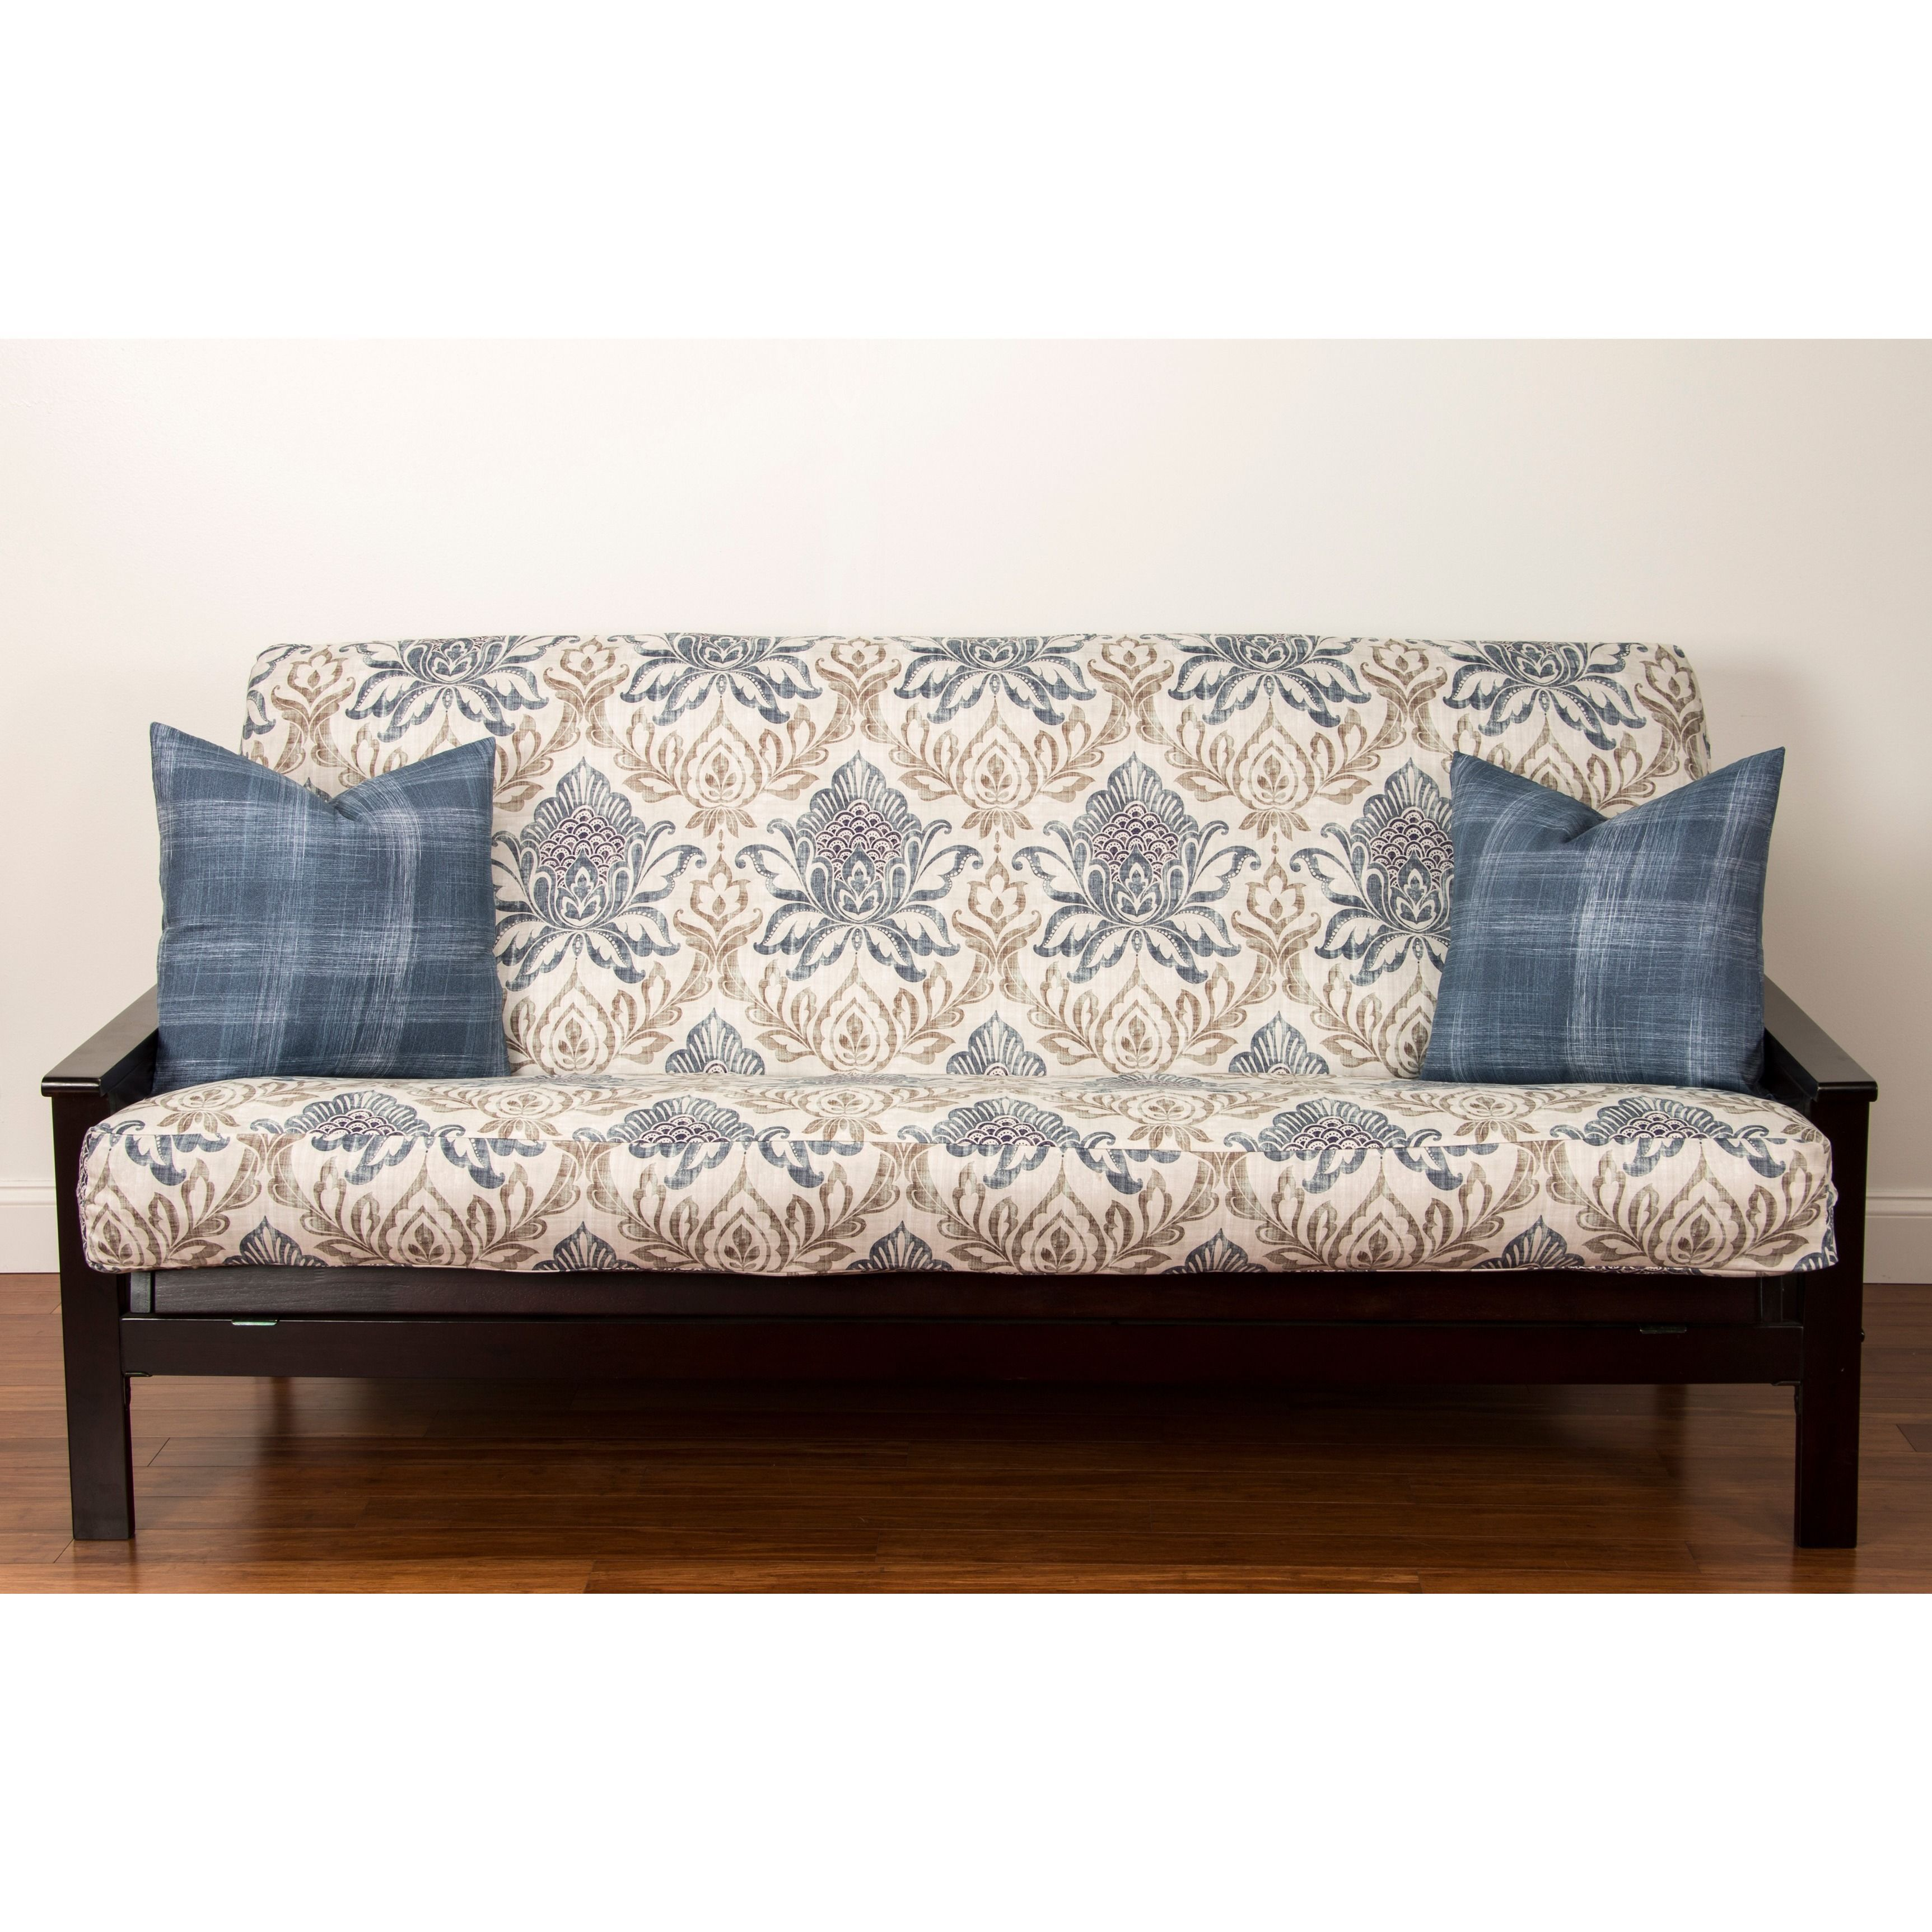 Keep Your Futon Cushion Protected With This Colorful Cover By Genoa Baroque The Blue Tan And Off White Is Machine Washable Features A